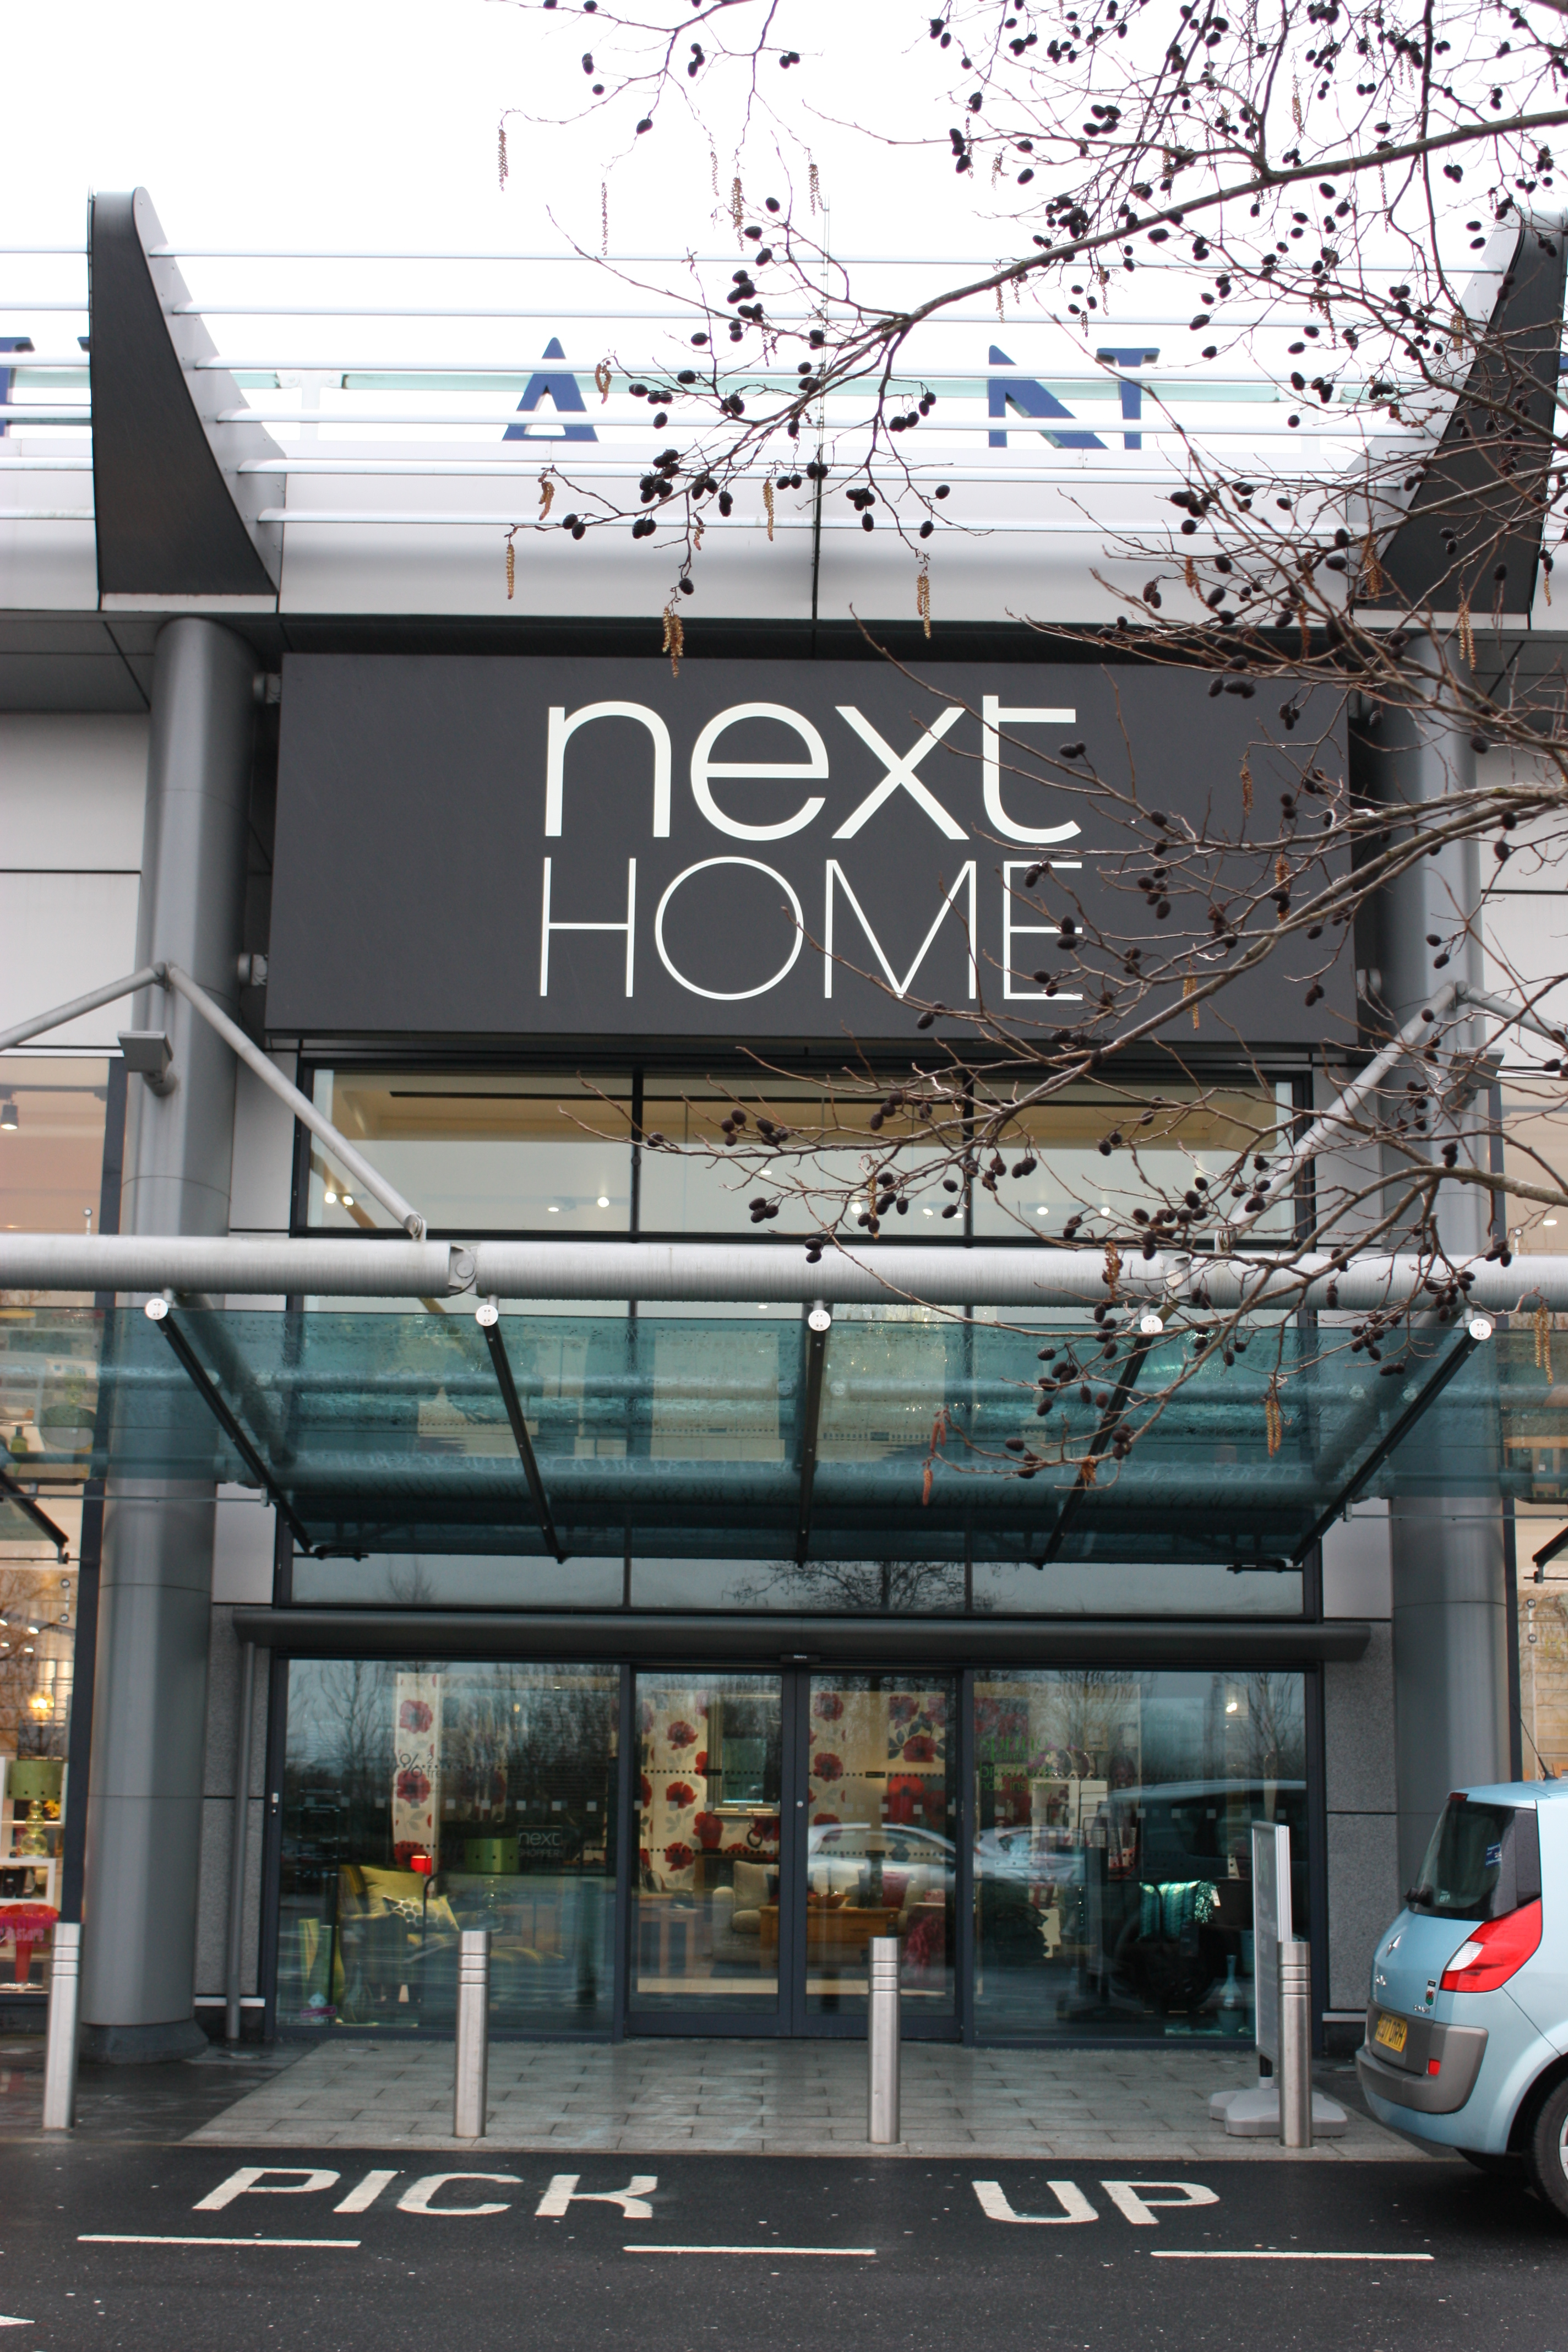 File:Next Home, Holywood Exchange, February 2010 (02).JPG - Wikimedia Commons